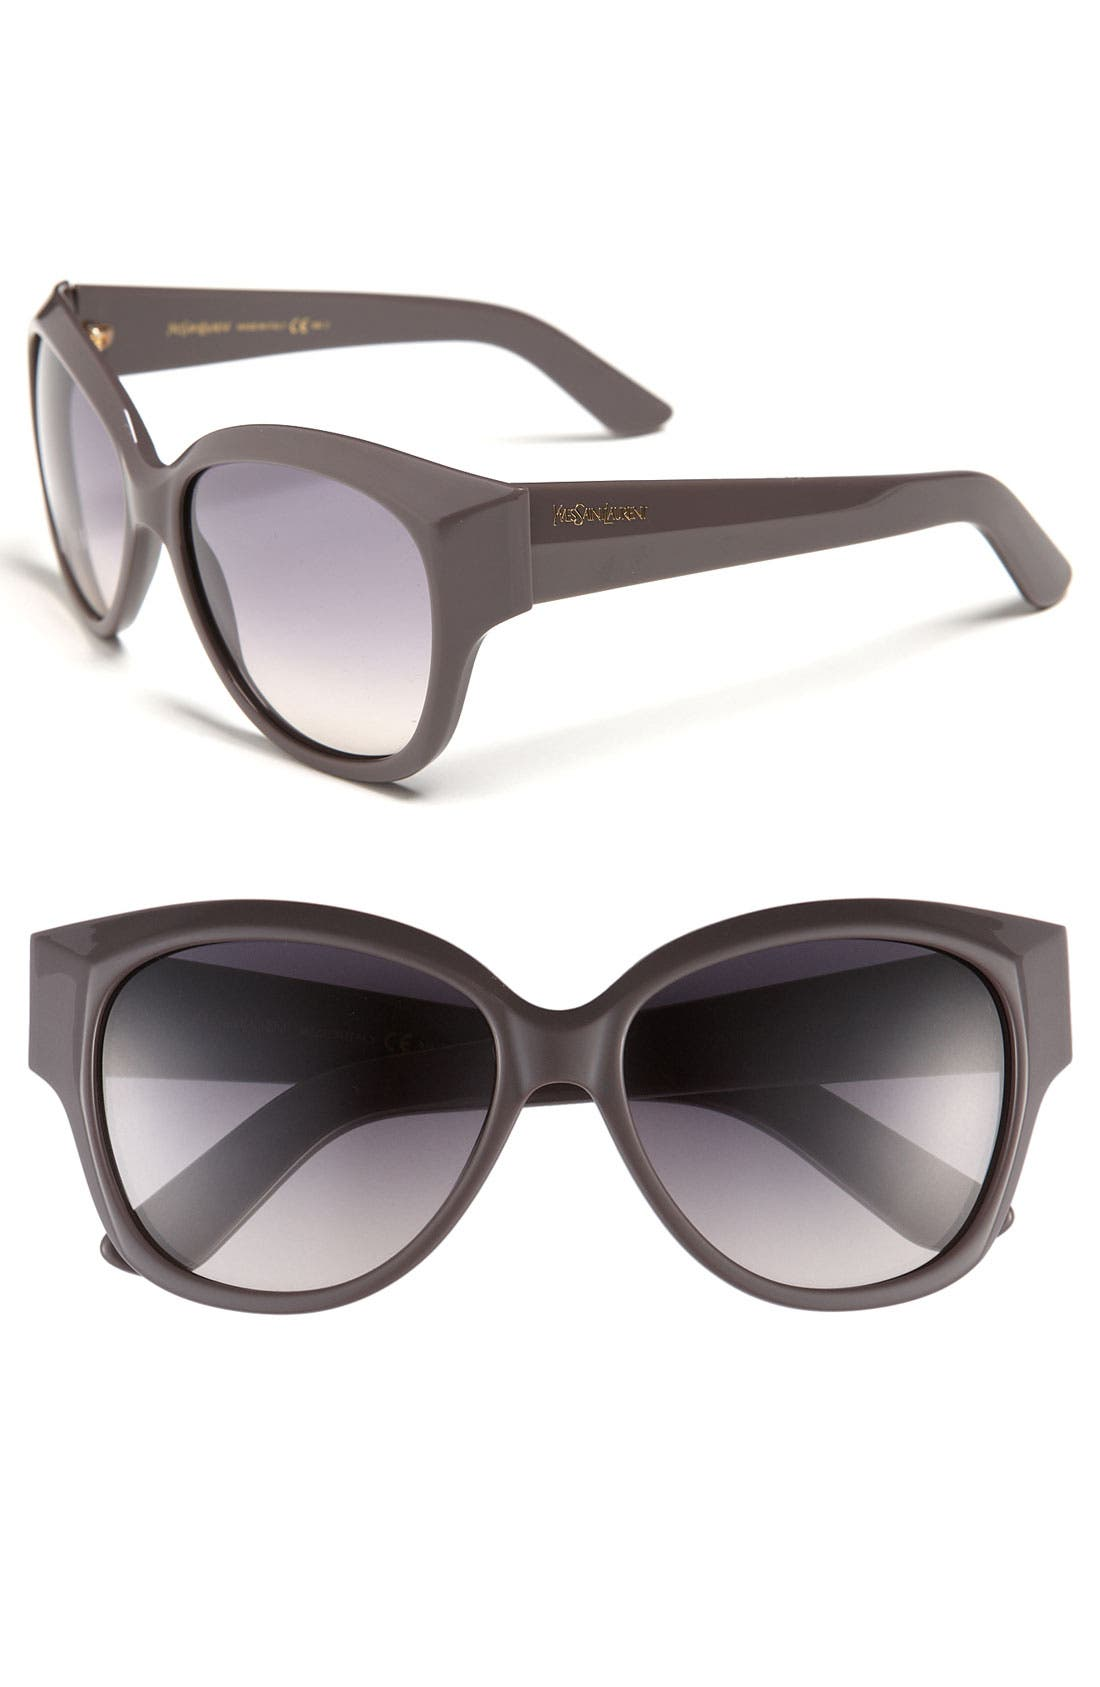 Alternate Image 1 Selected - Yves Saint Laurent Retro Sunglasses